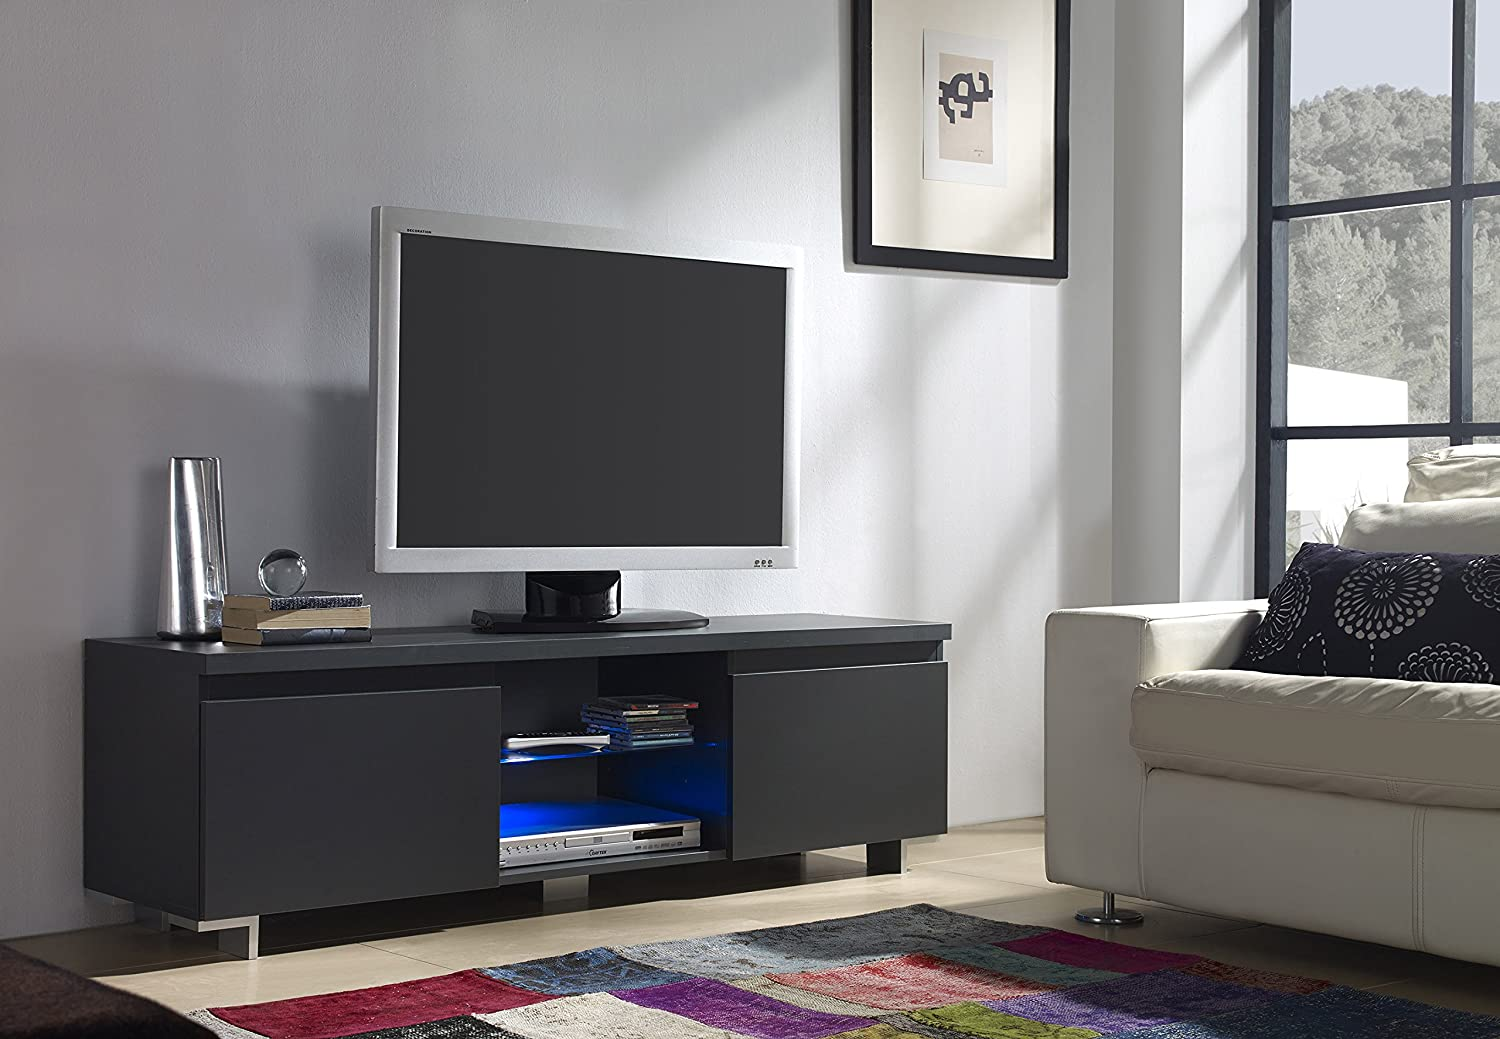 Meuble Tv 2 Porte En Gris Anthracite Avec Led Amazon Fr Cuisine  # Meuble Tv A Accrocher Au Mur